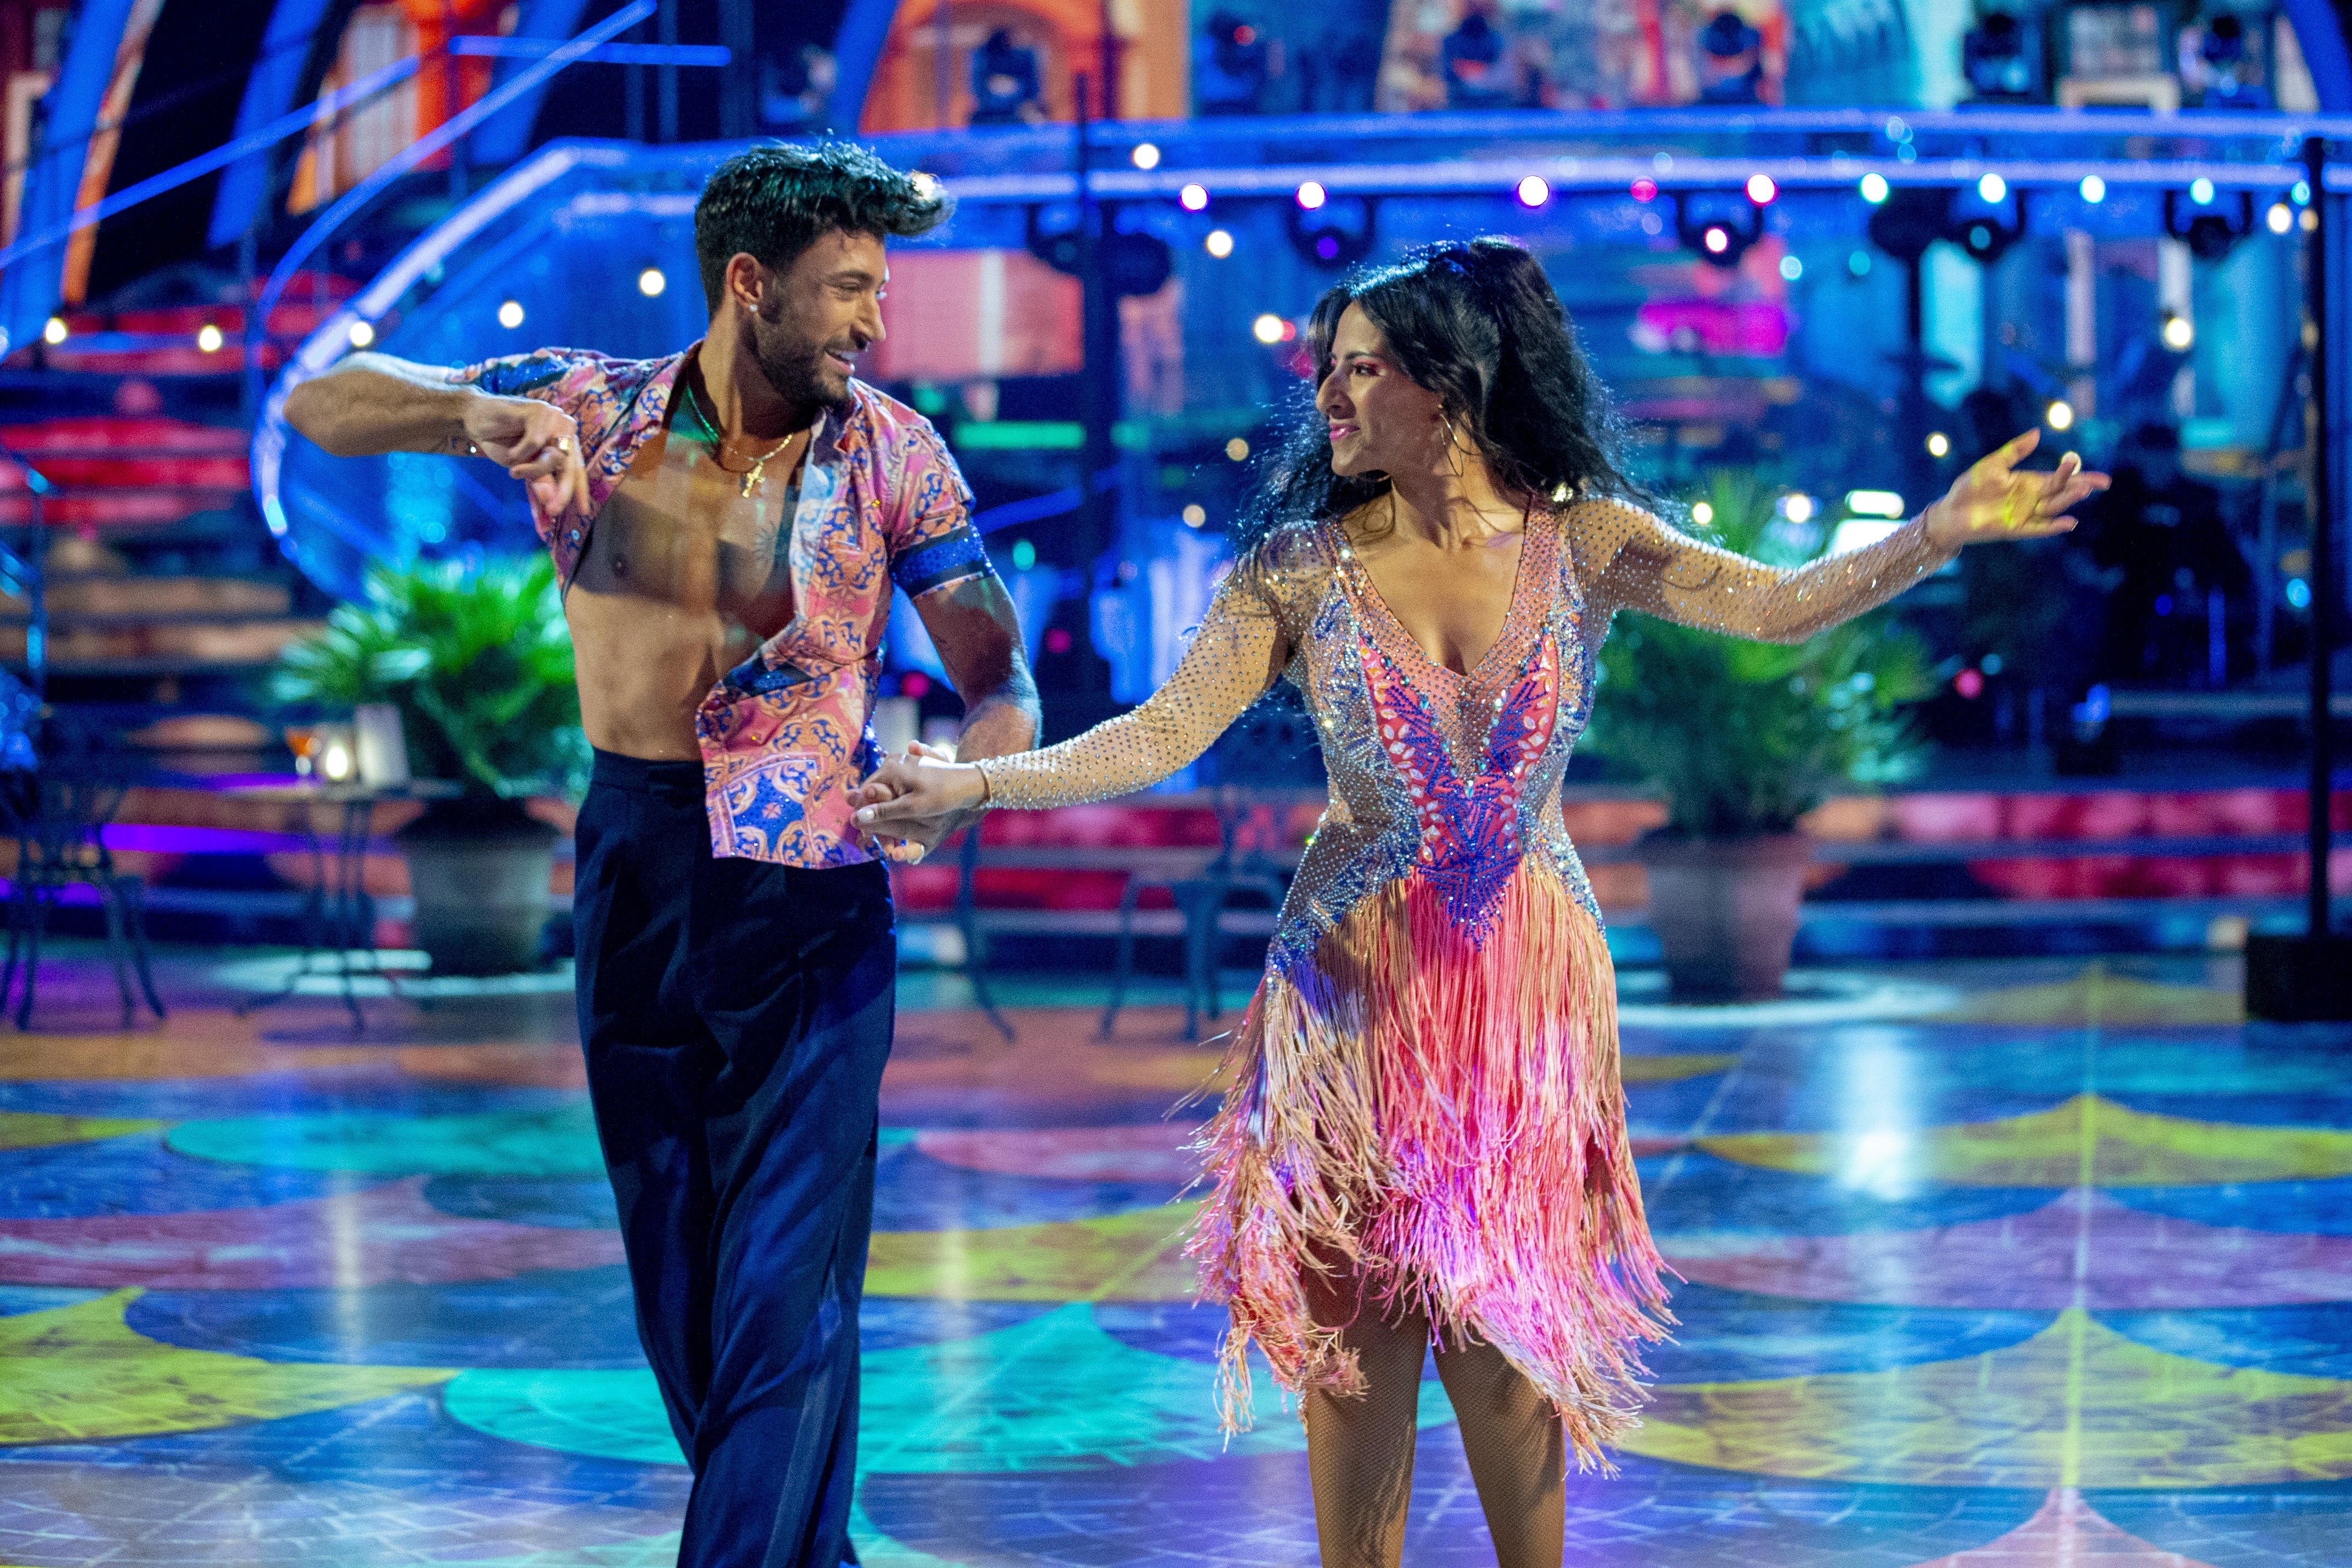 Ranvir and Giovanni's sizzling chemistry on the Strictly dance floor has set tongues wagging. (BBC)